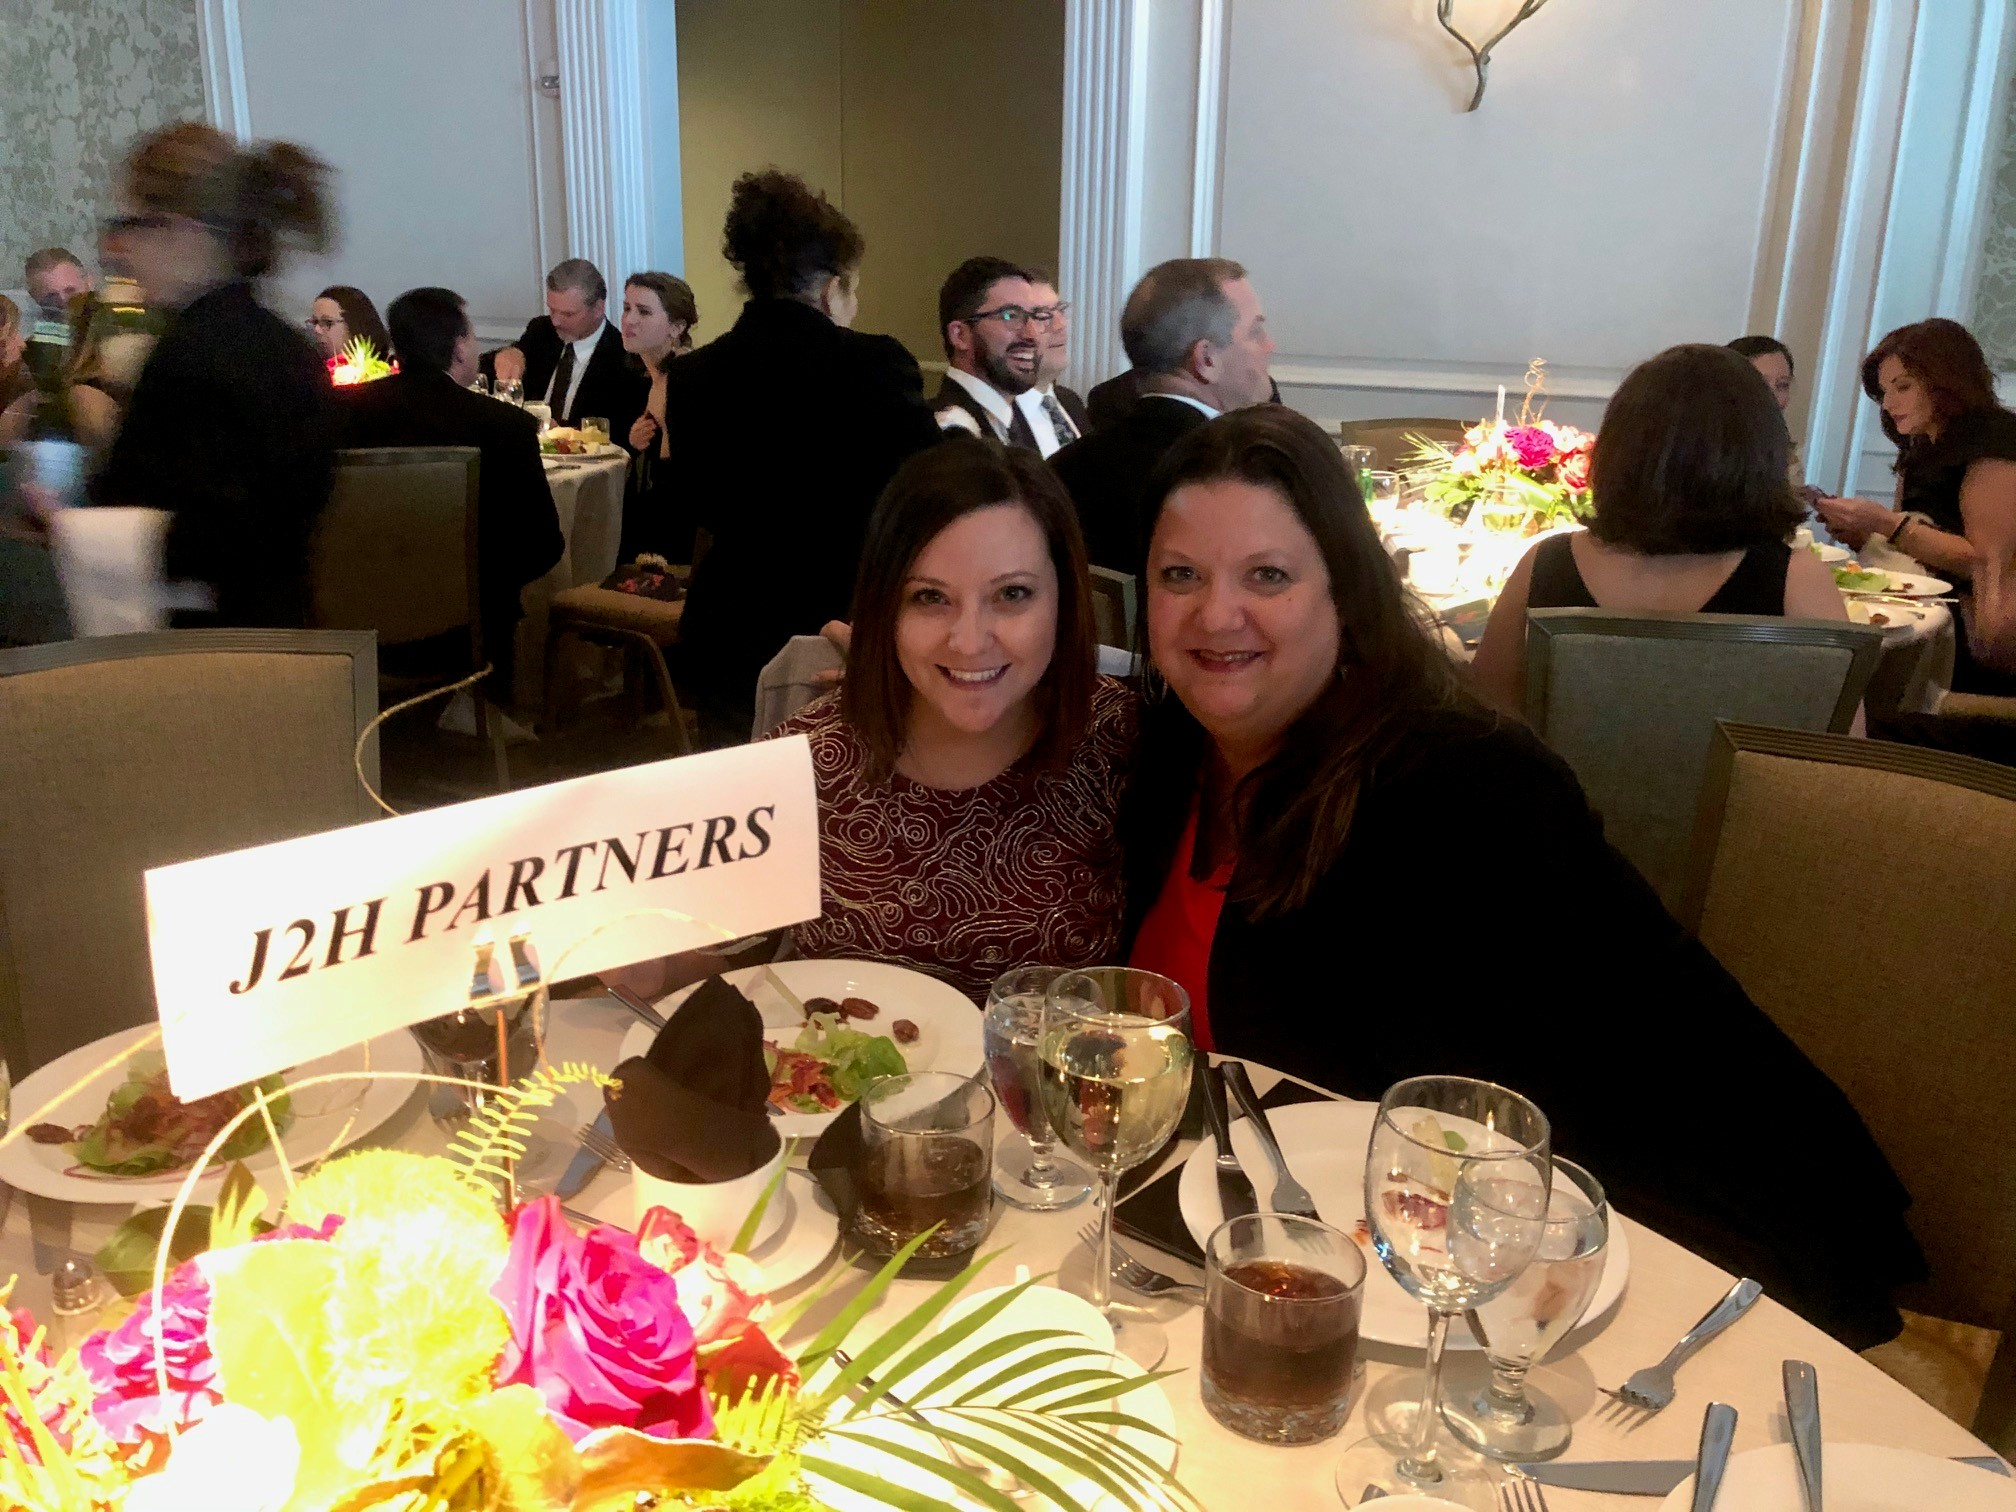 Two ladies at NAIOP event